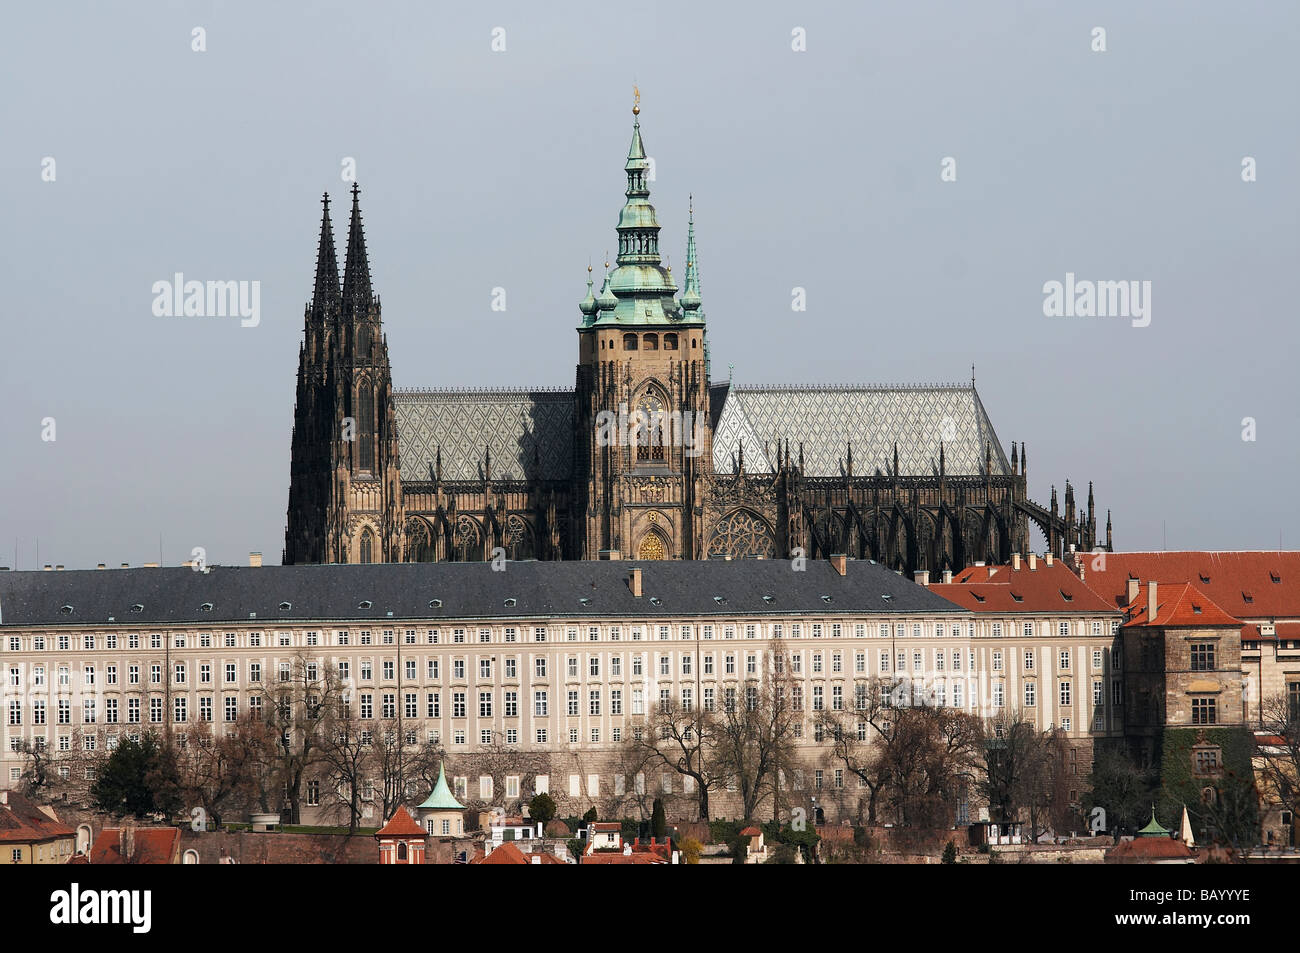 Hradcany - Cathedral of Saint Vitus in the Prague castle, the coronation cathedral of the Bohemian sovereigns - Stock Image